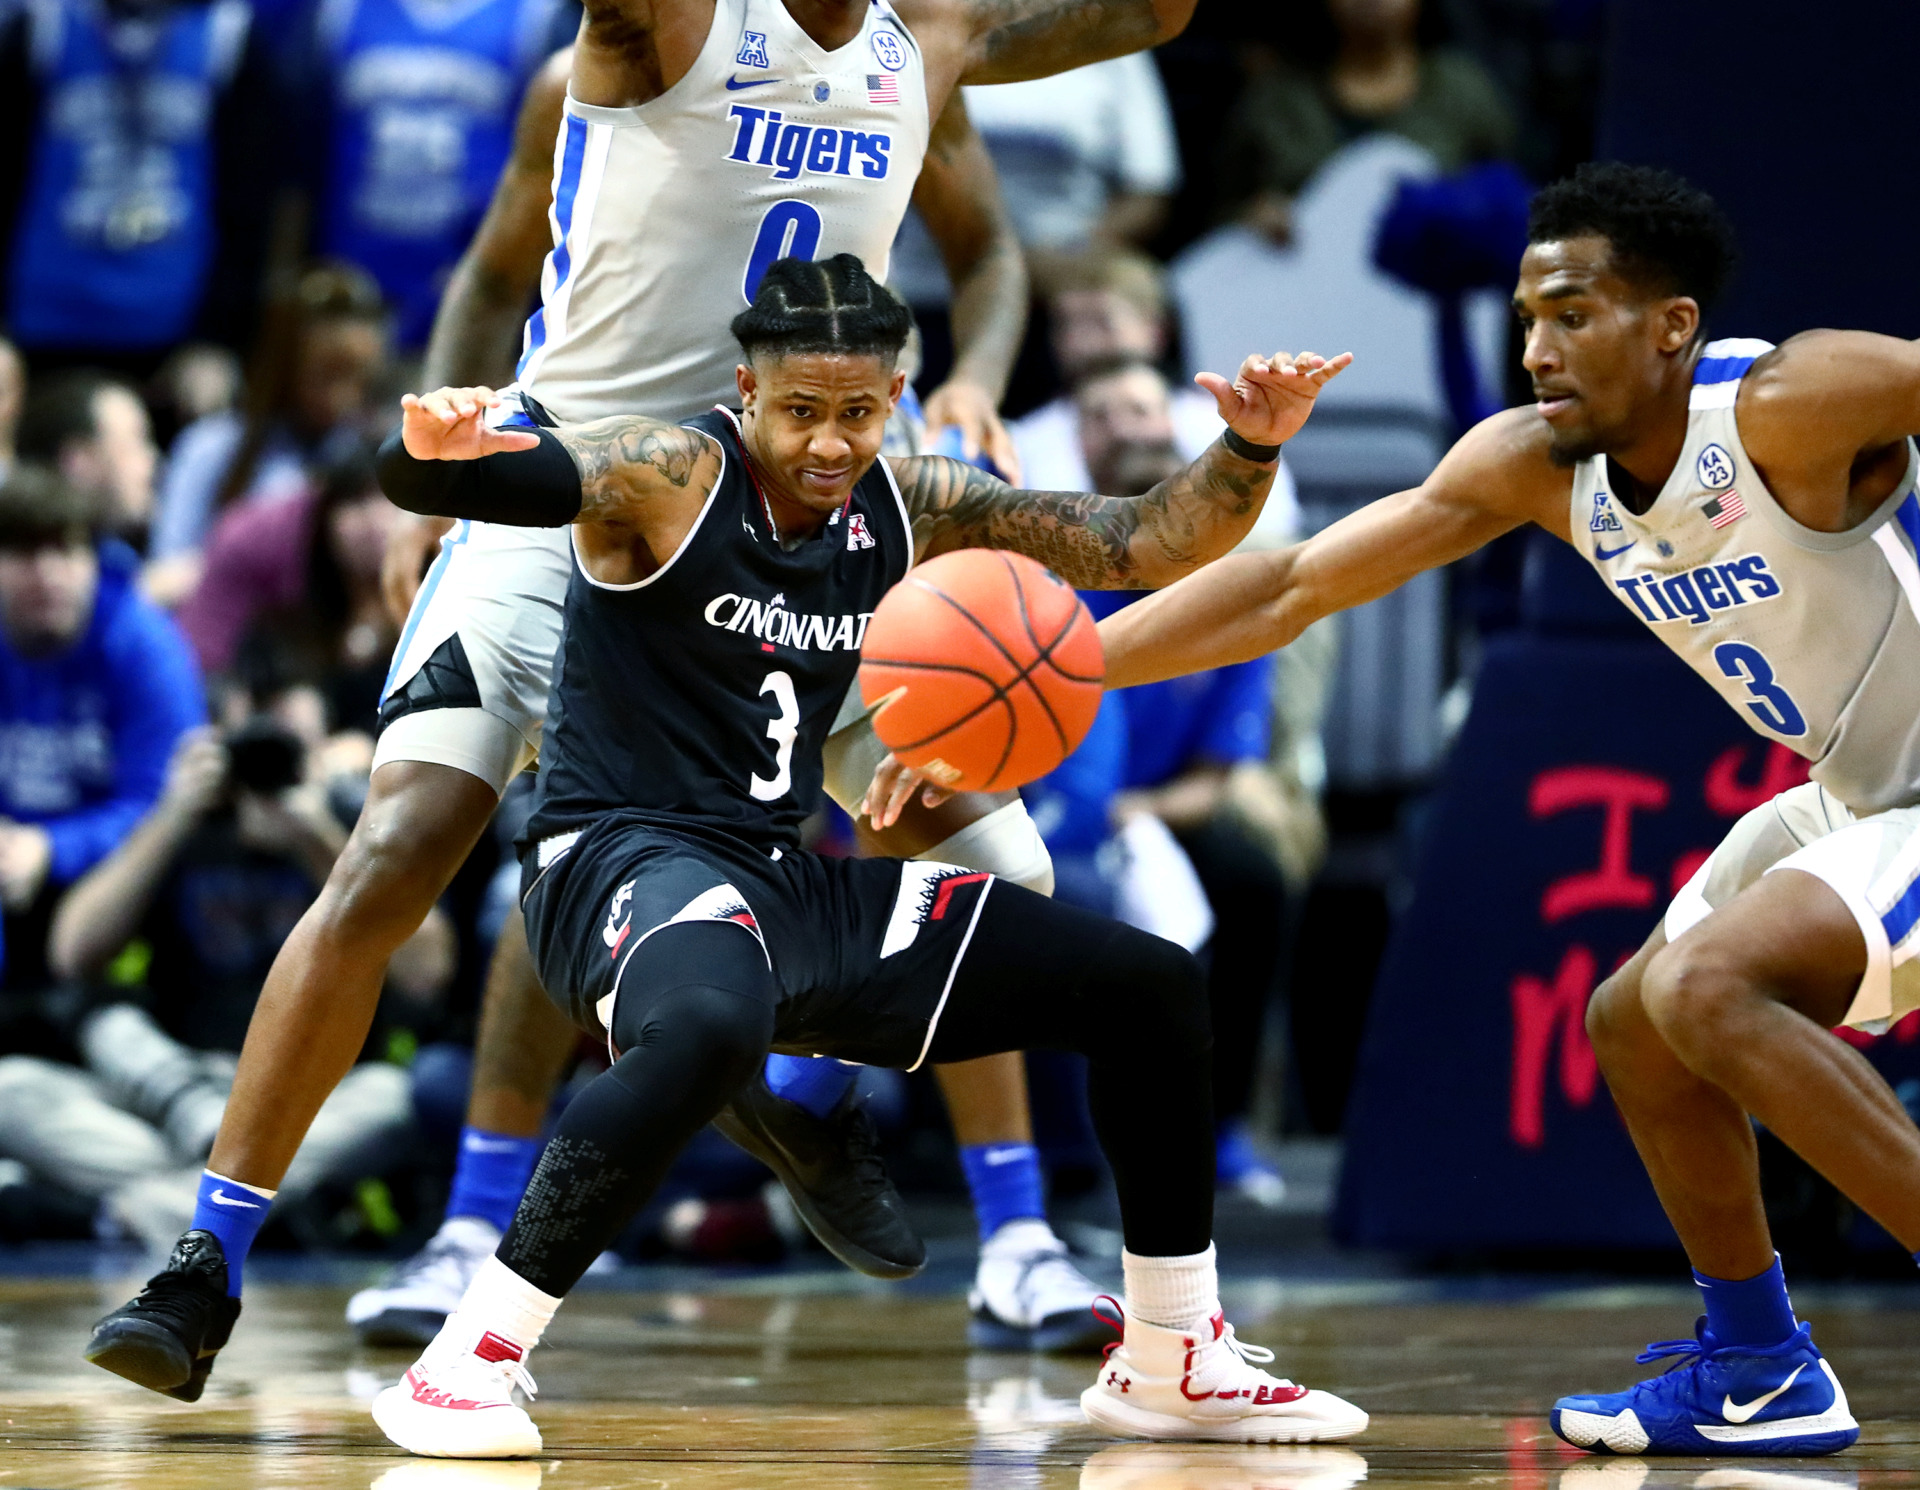 Memphis Tigers senior guard Jeremiah Martin (3) steals the ball from Cincinnati Bearcats guard Justin Jenifer (3) during a game against the Bearcats on Thursday, Feb. 7, 2019, in Memphis. The Tigers fell 69-64 despite Martin's strong performance. (Houston Cofield/Daily Memphian)